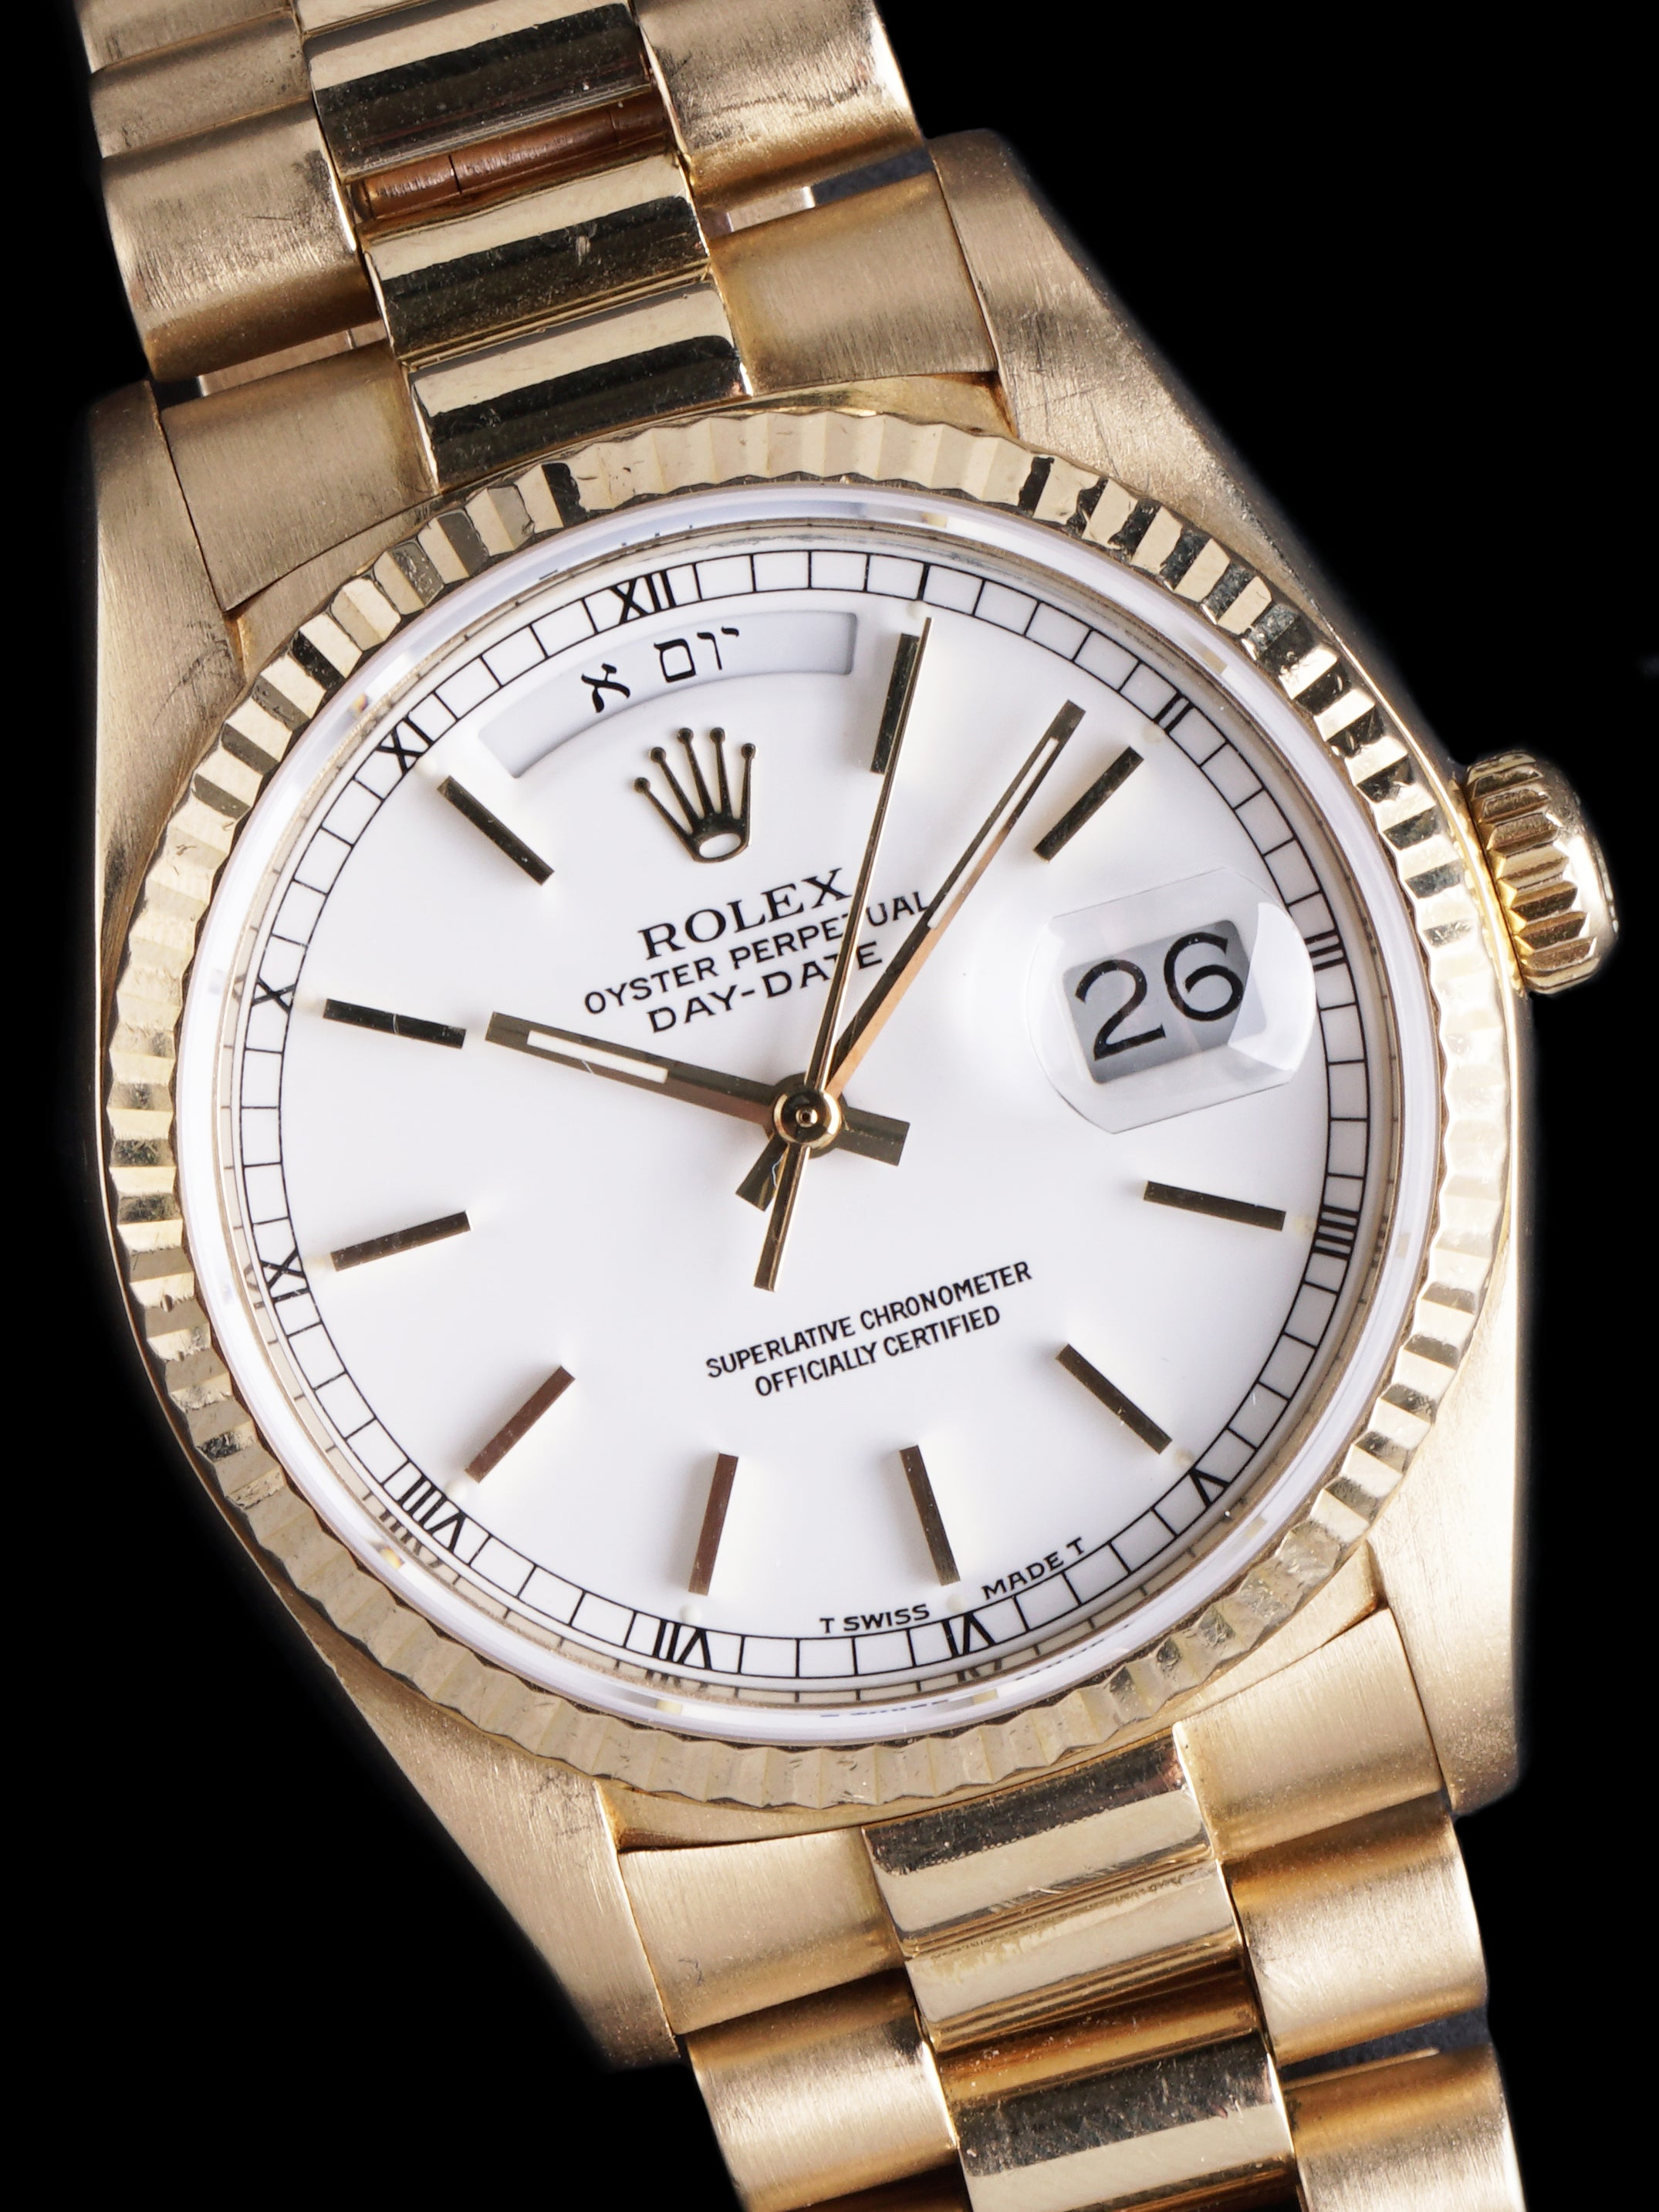 "*Rare* 1986 Rolex Day-Date (Ref. 18038) White Lacquer ""Stella Dial"" W/ Hebrew Day Wheel"